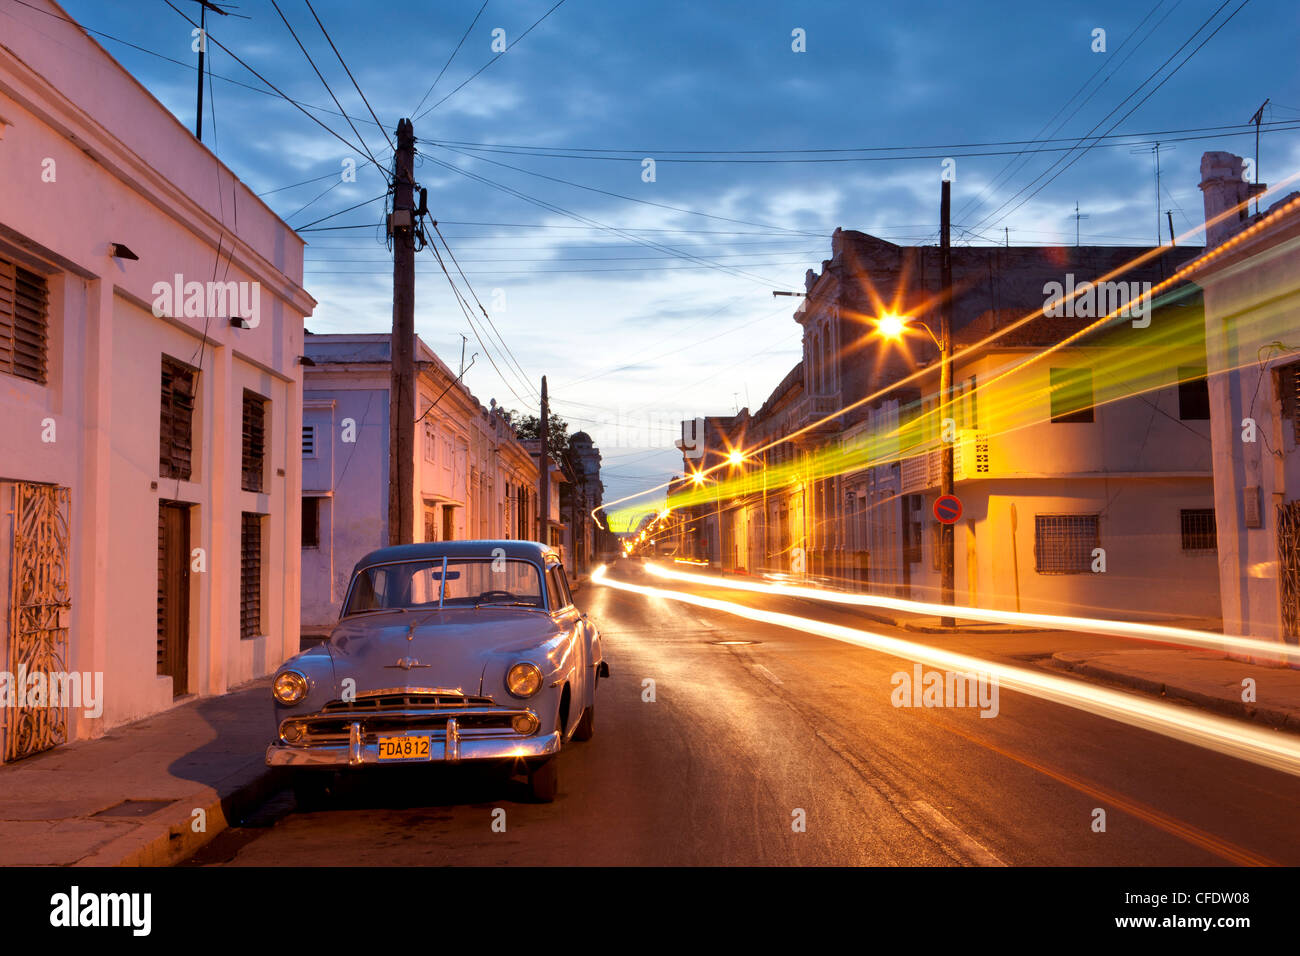 Street scene at night showing Classic American car and the light trails of passing traffic, Cienfuegos, Cuba, West - Stock Image